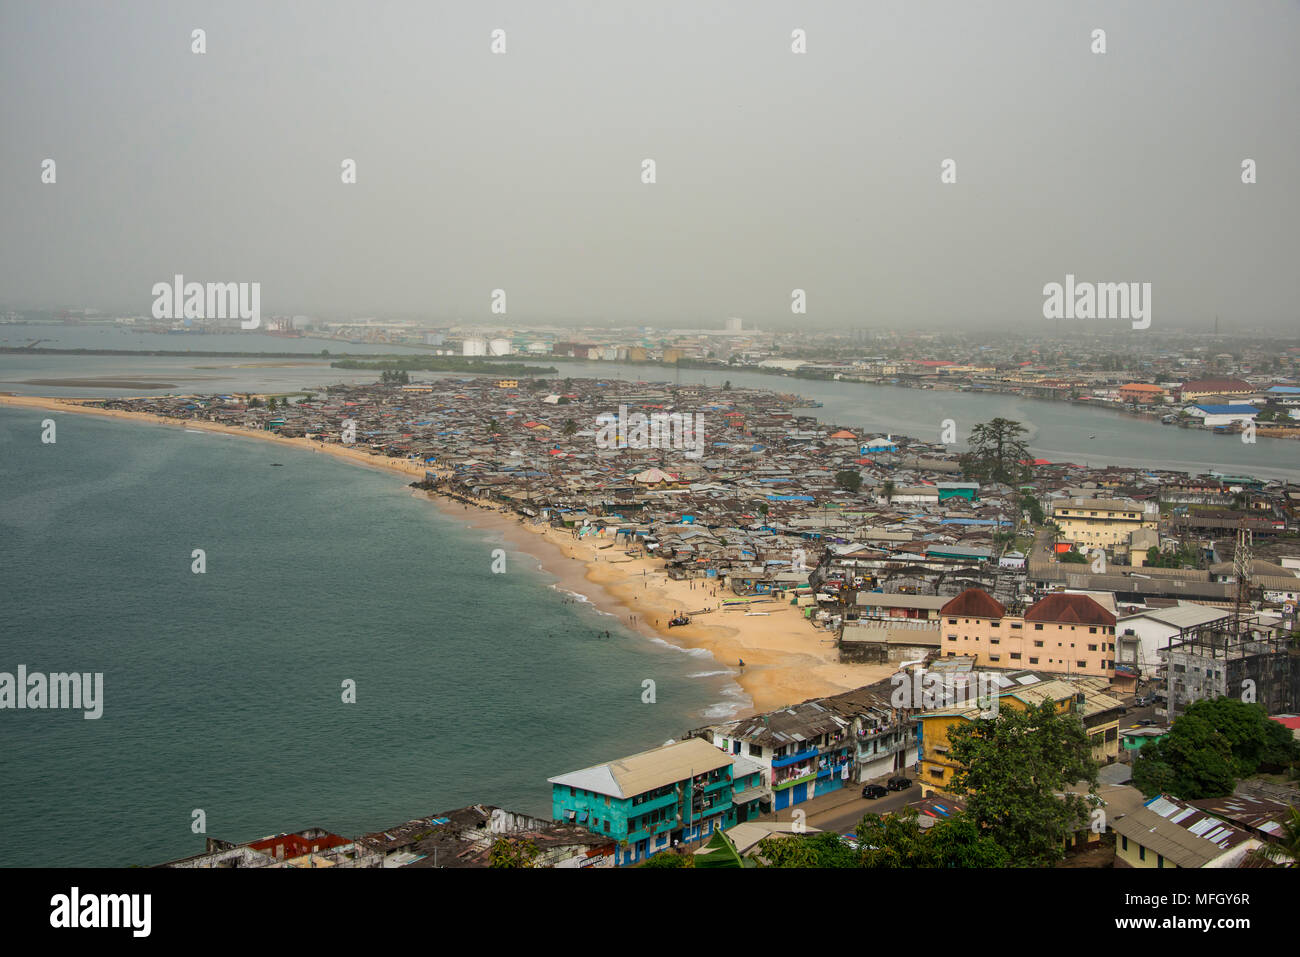 View over the shantytown of West Point, Monrovia, Liberia, West Africa, Africa - Stock Image